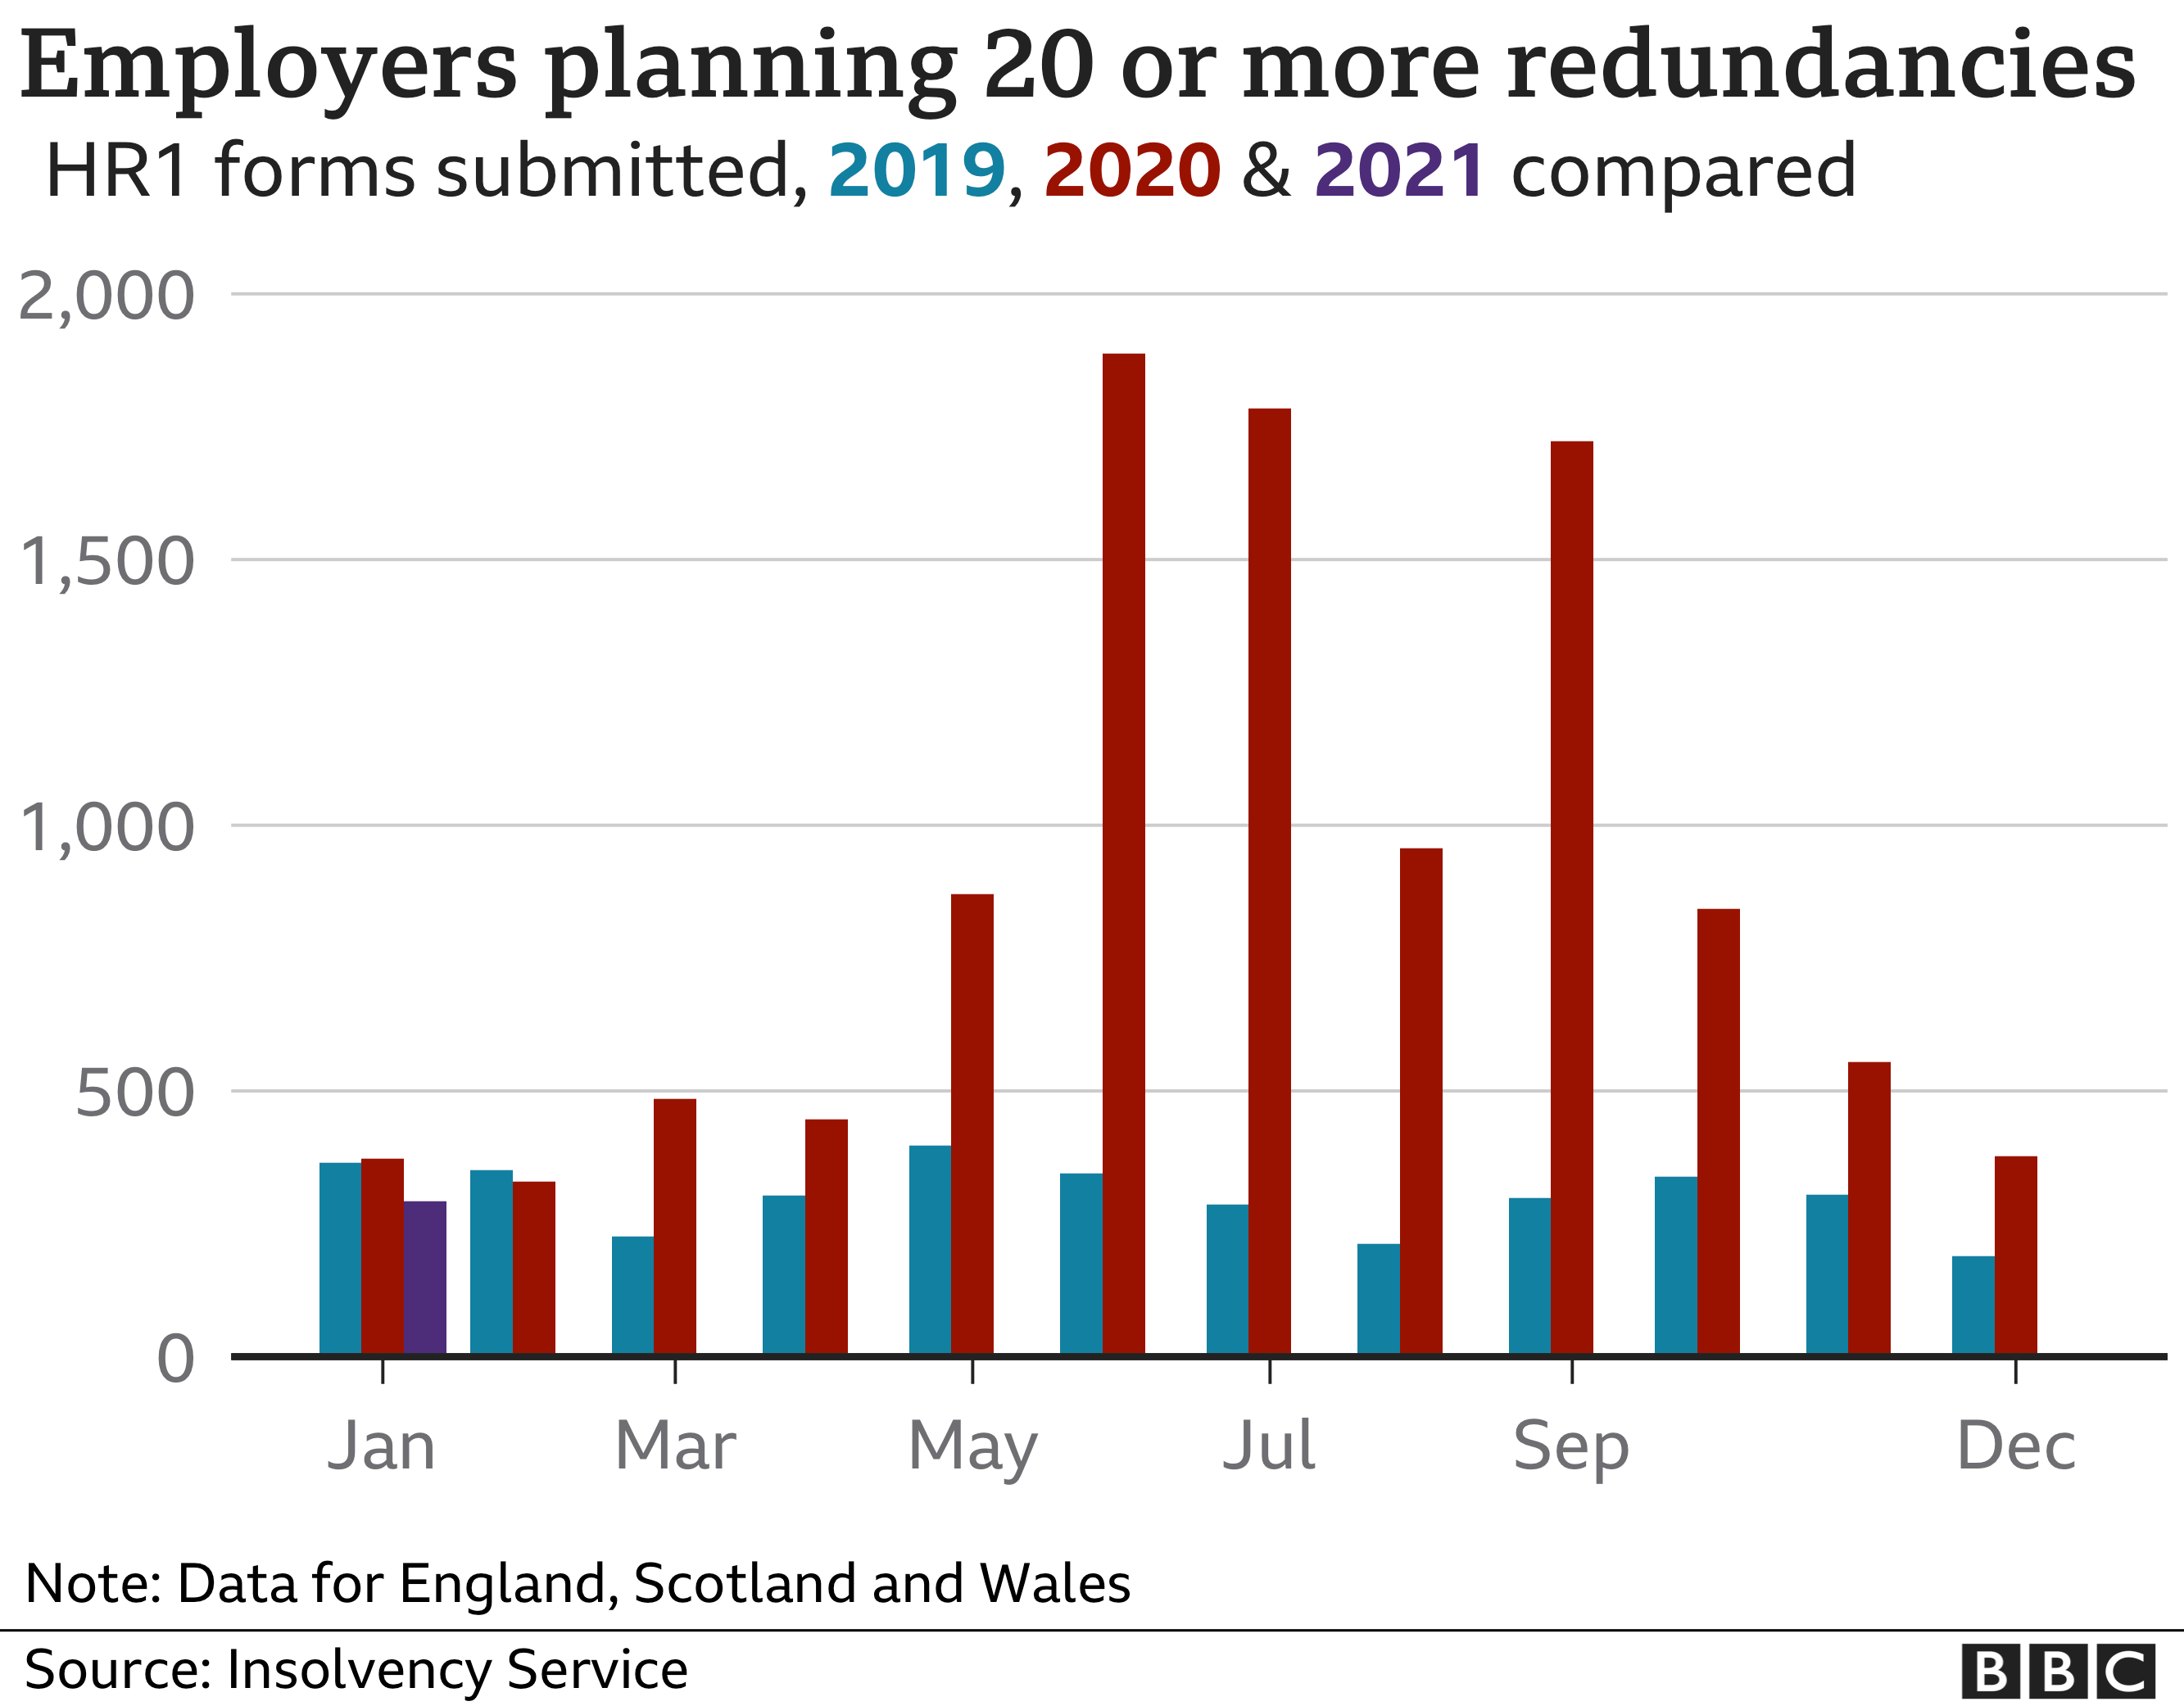 Graph showing number of employers planning redundancies in Britain, according to Insolvency Service data for 2019, 2020 and 2021.